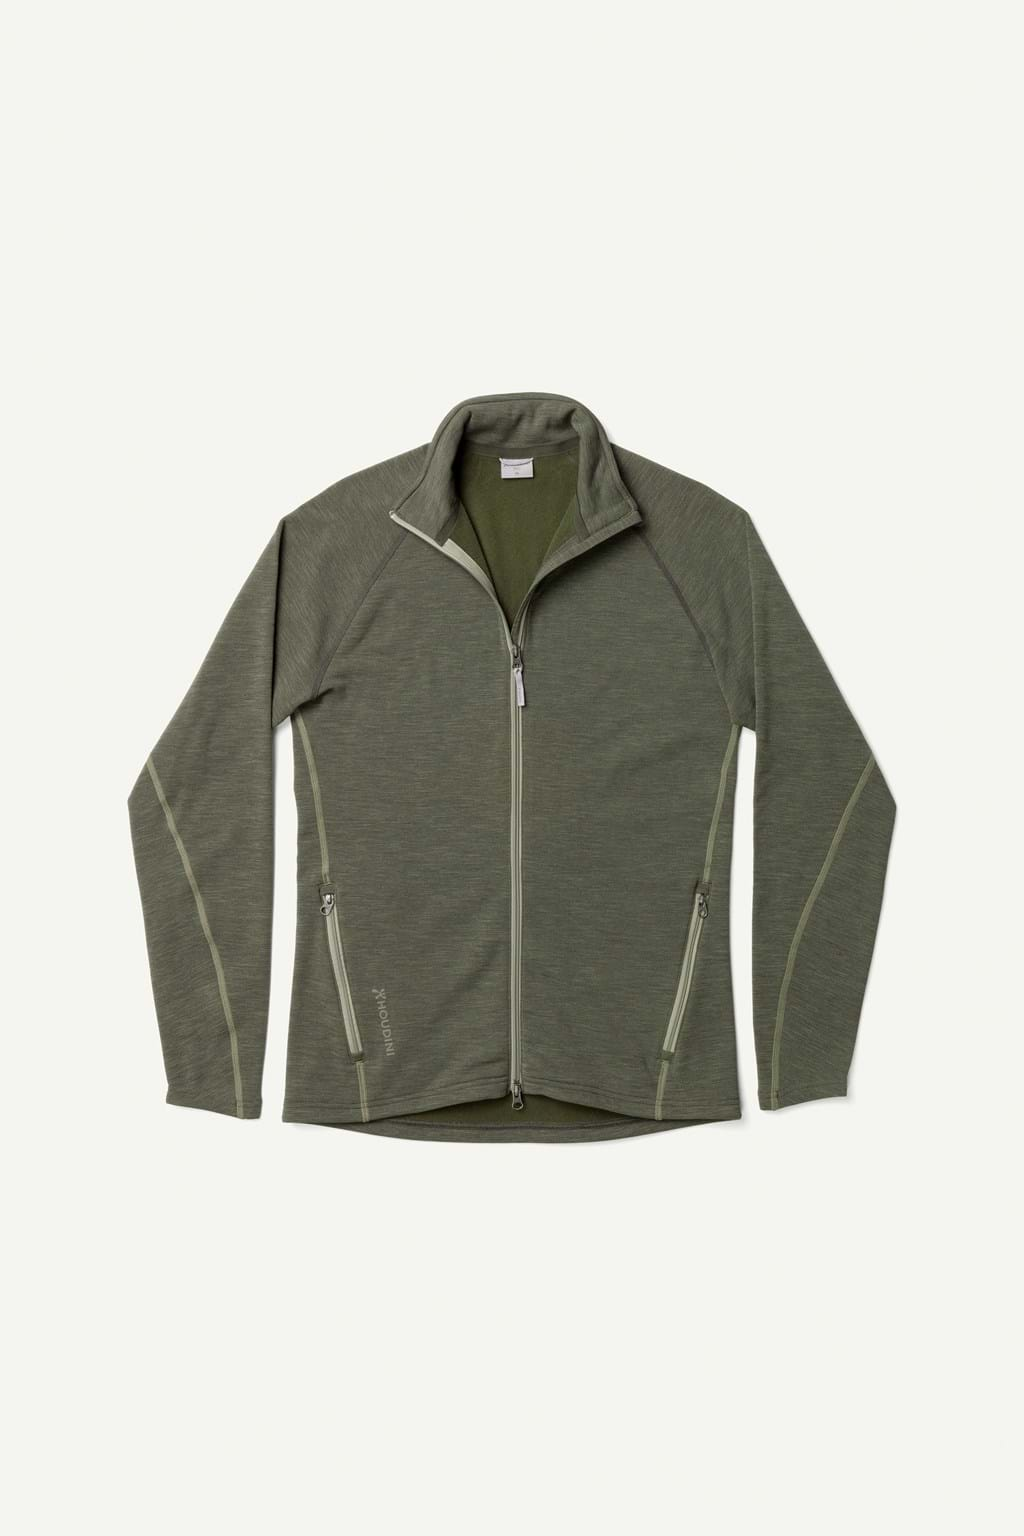 HOUDINI M's Outright Jacket